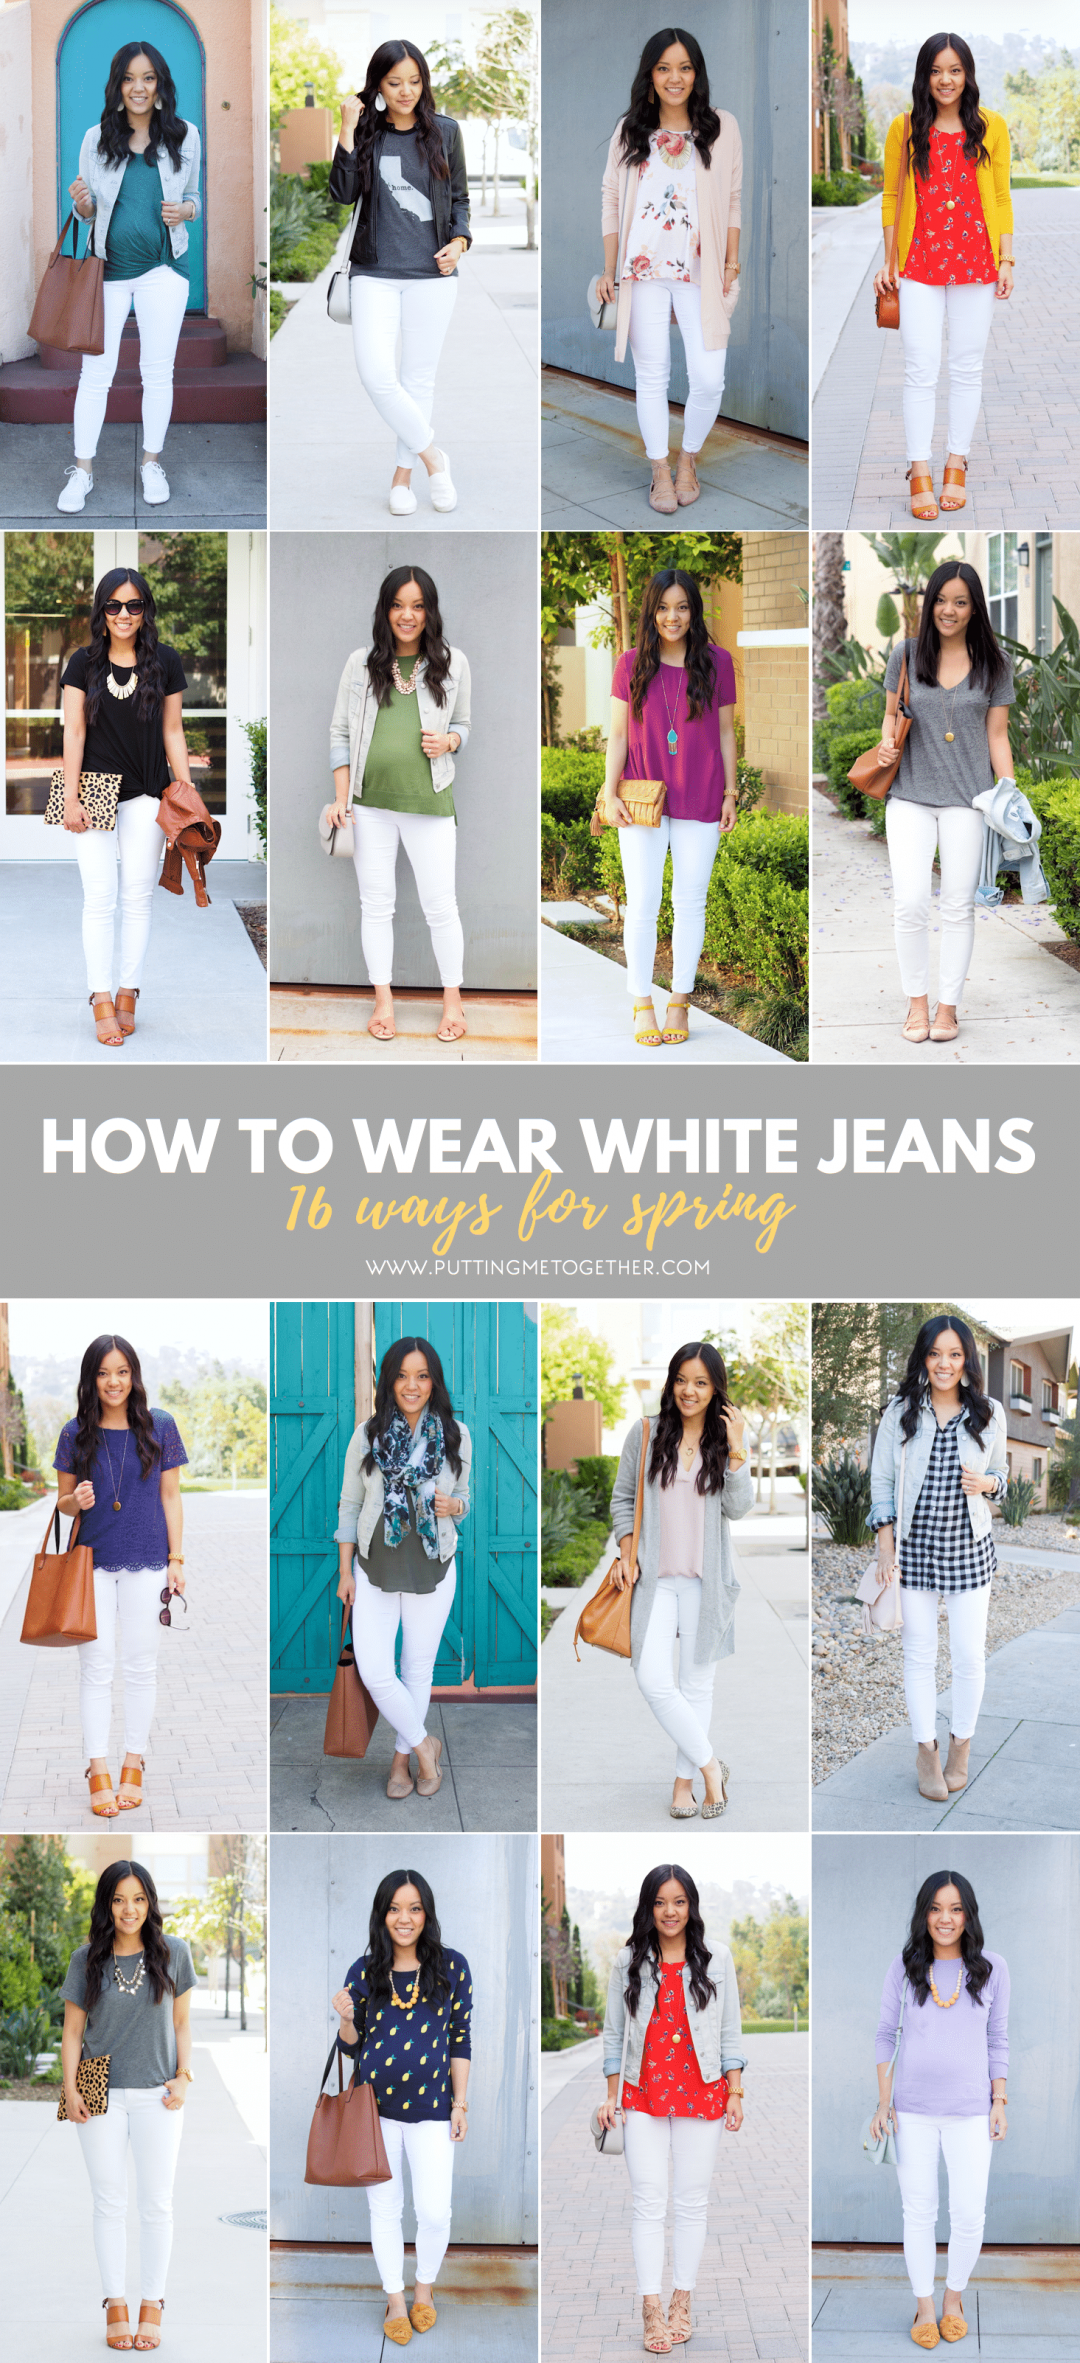 16 Outfits With White Jeans for Spring